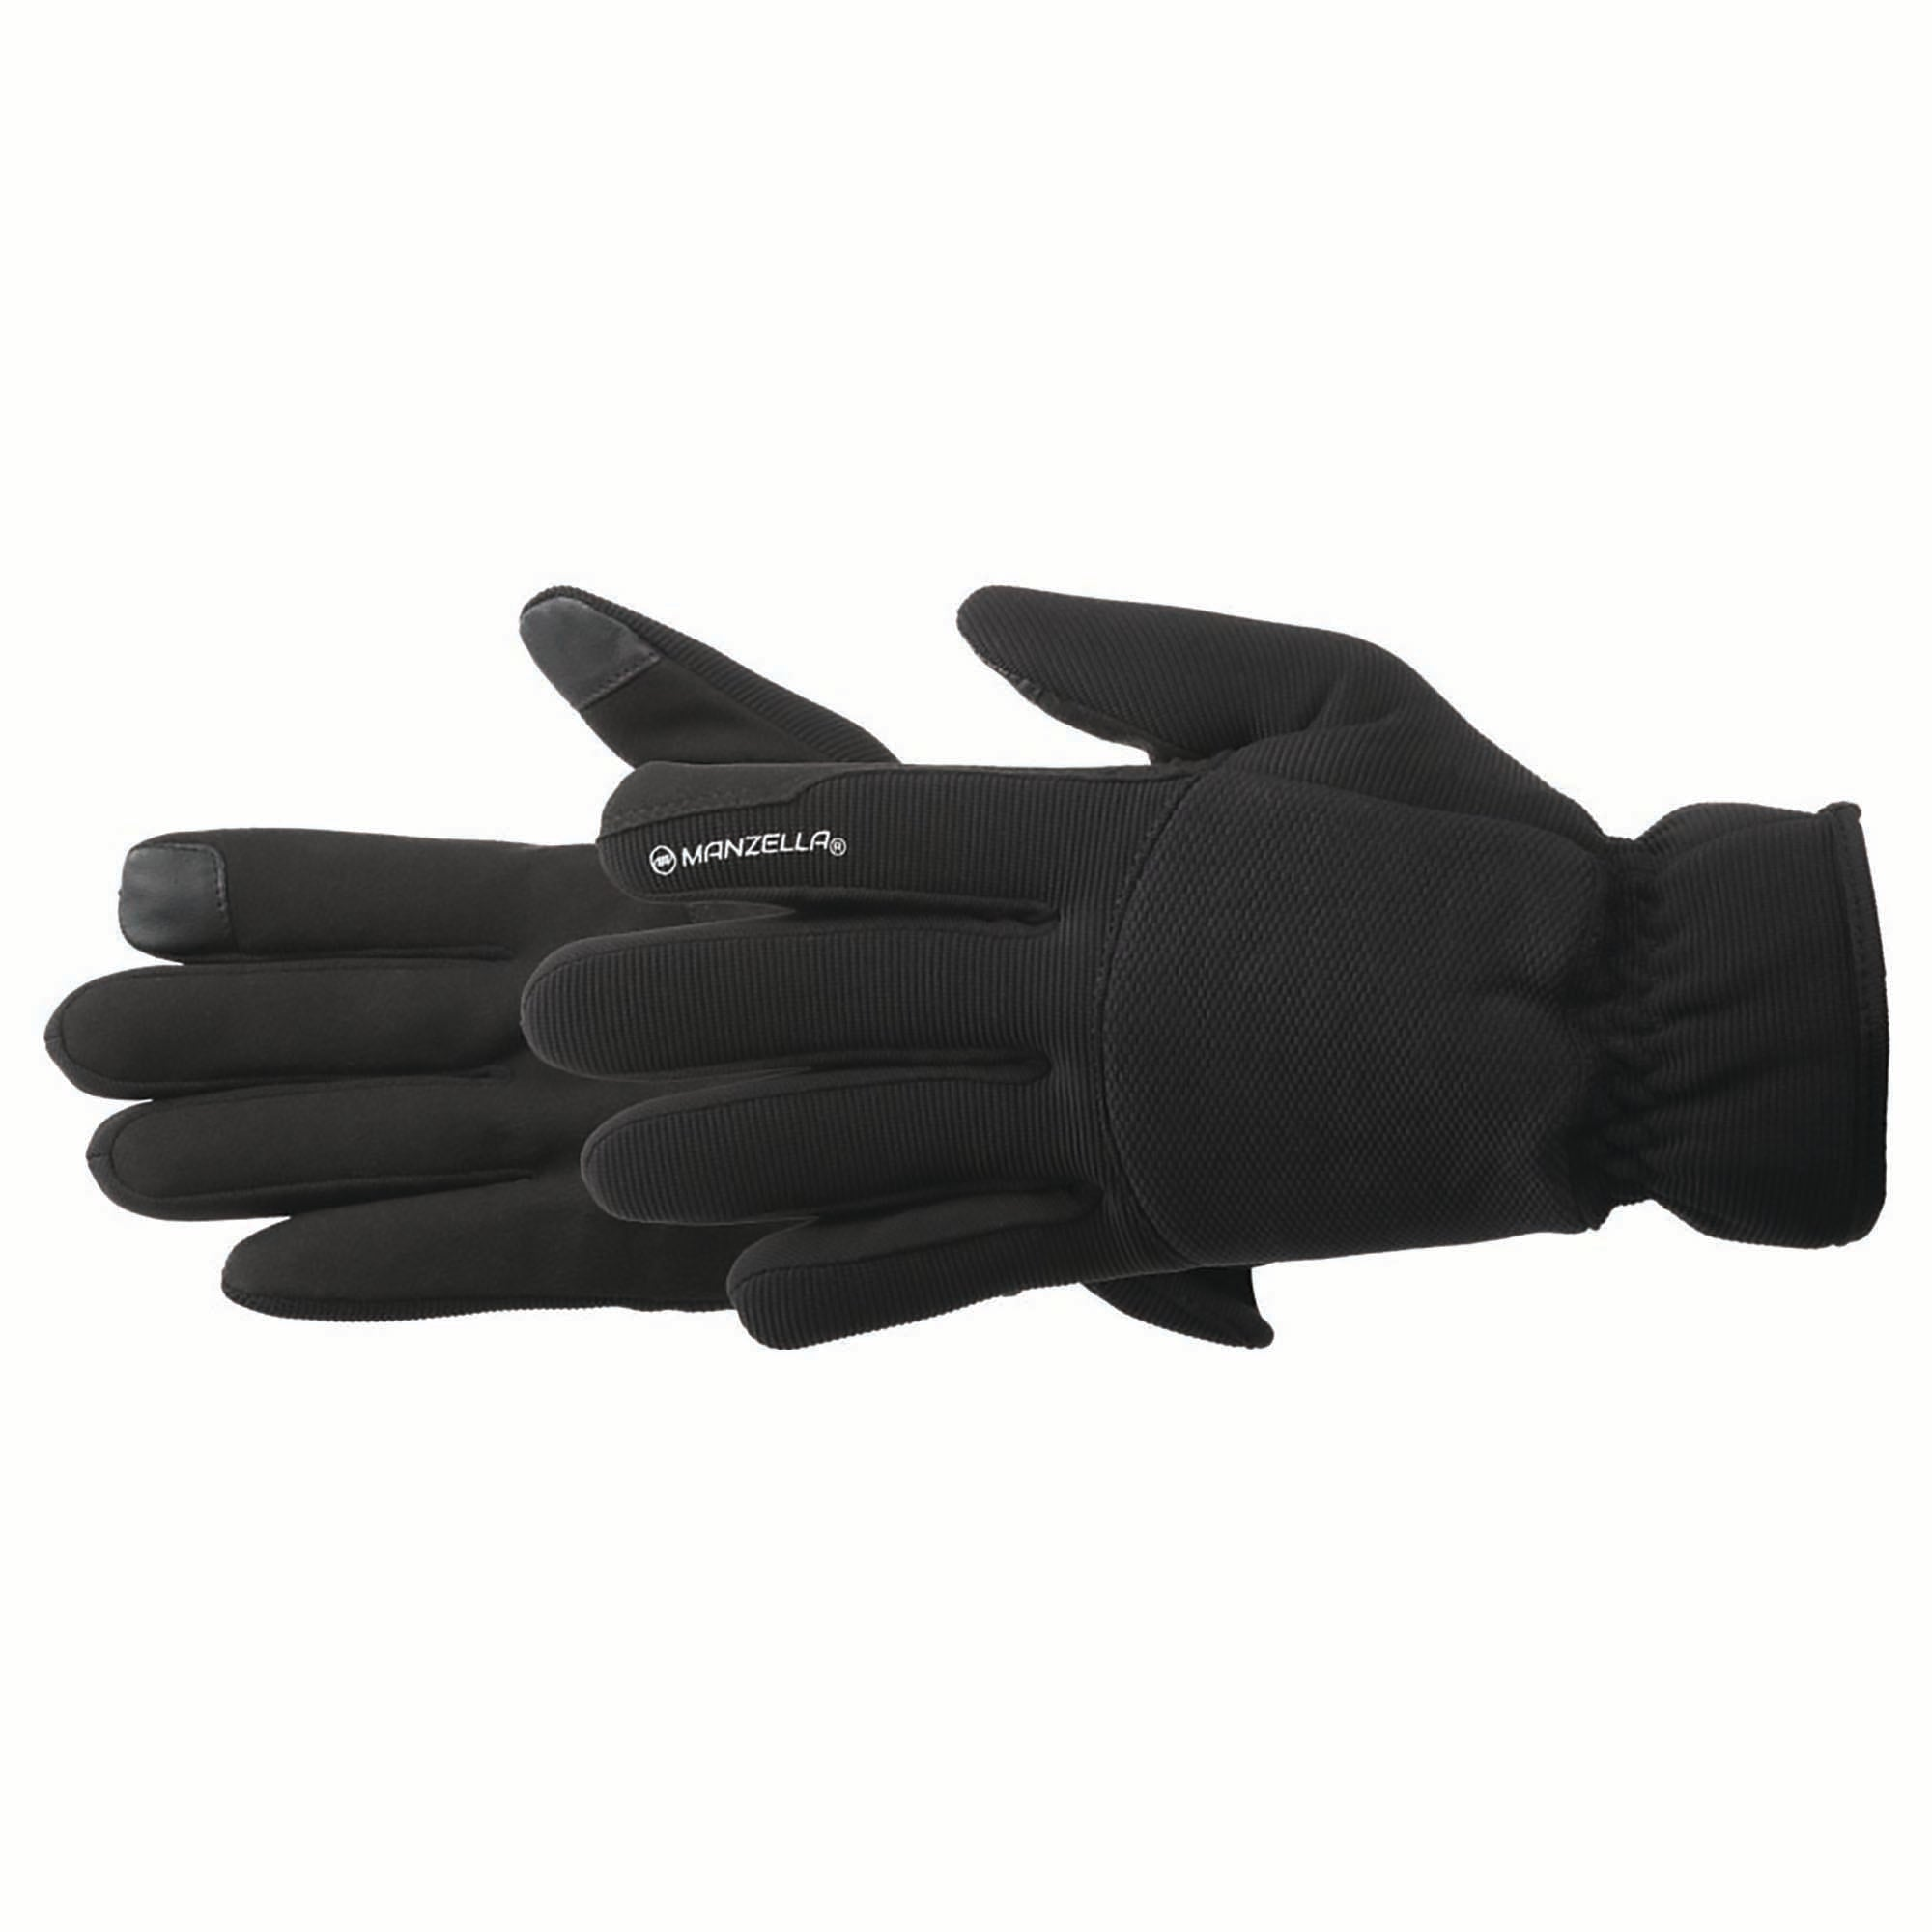 Manzella TRAILWOOD TouchTip Gloves for Men